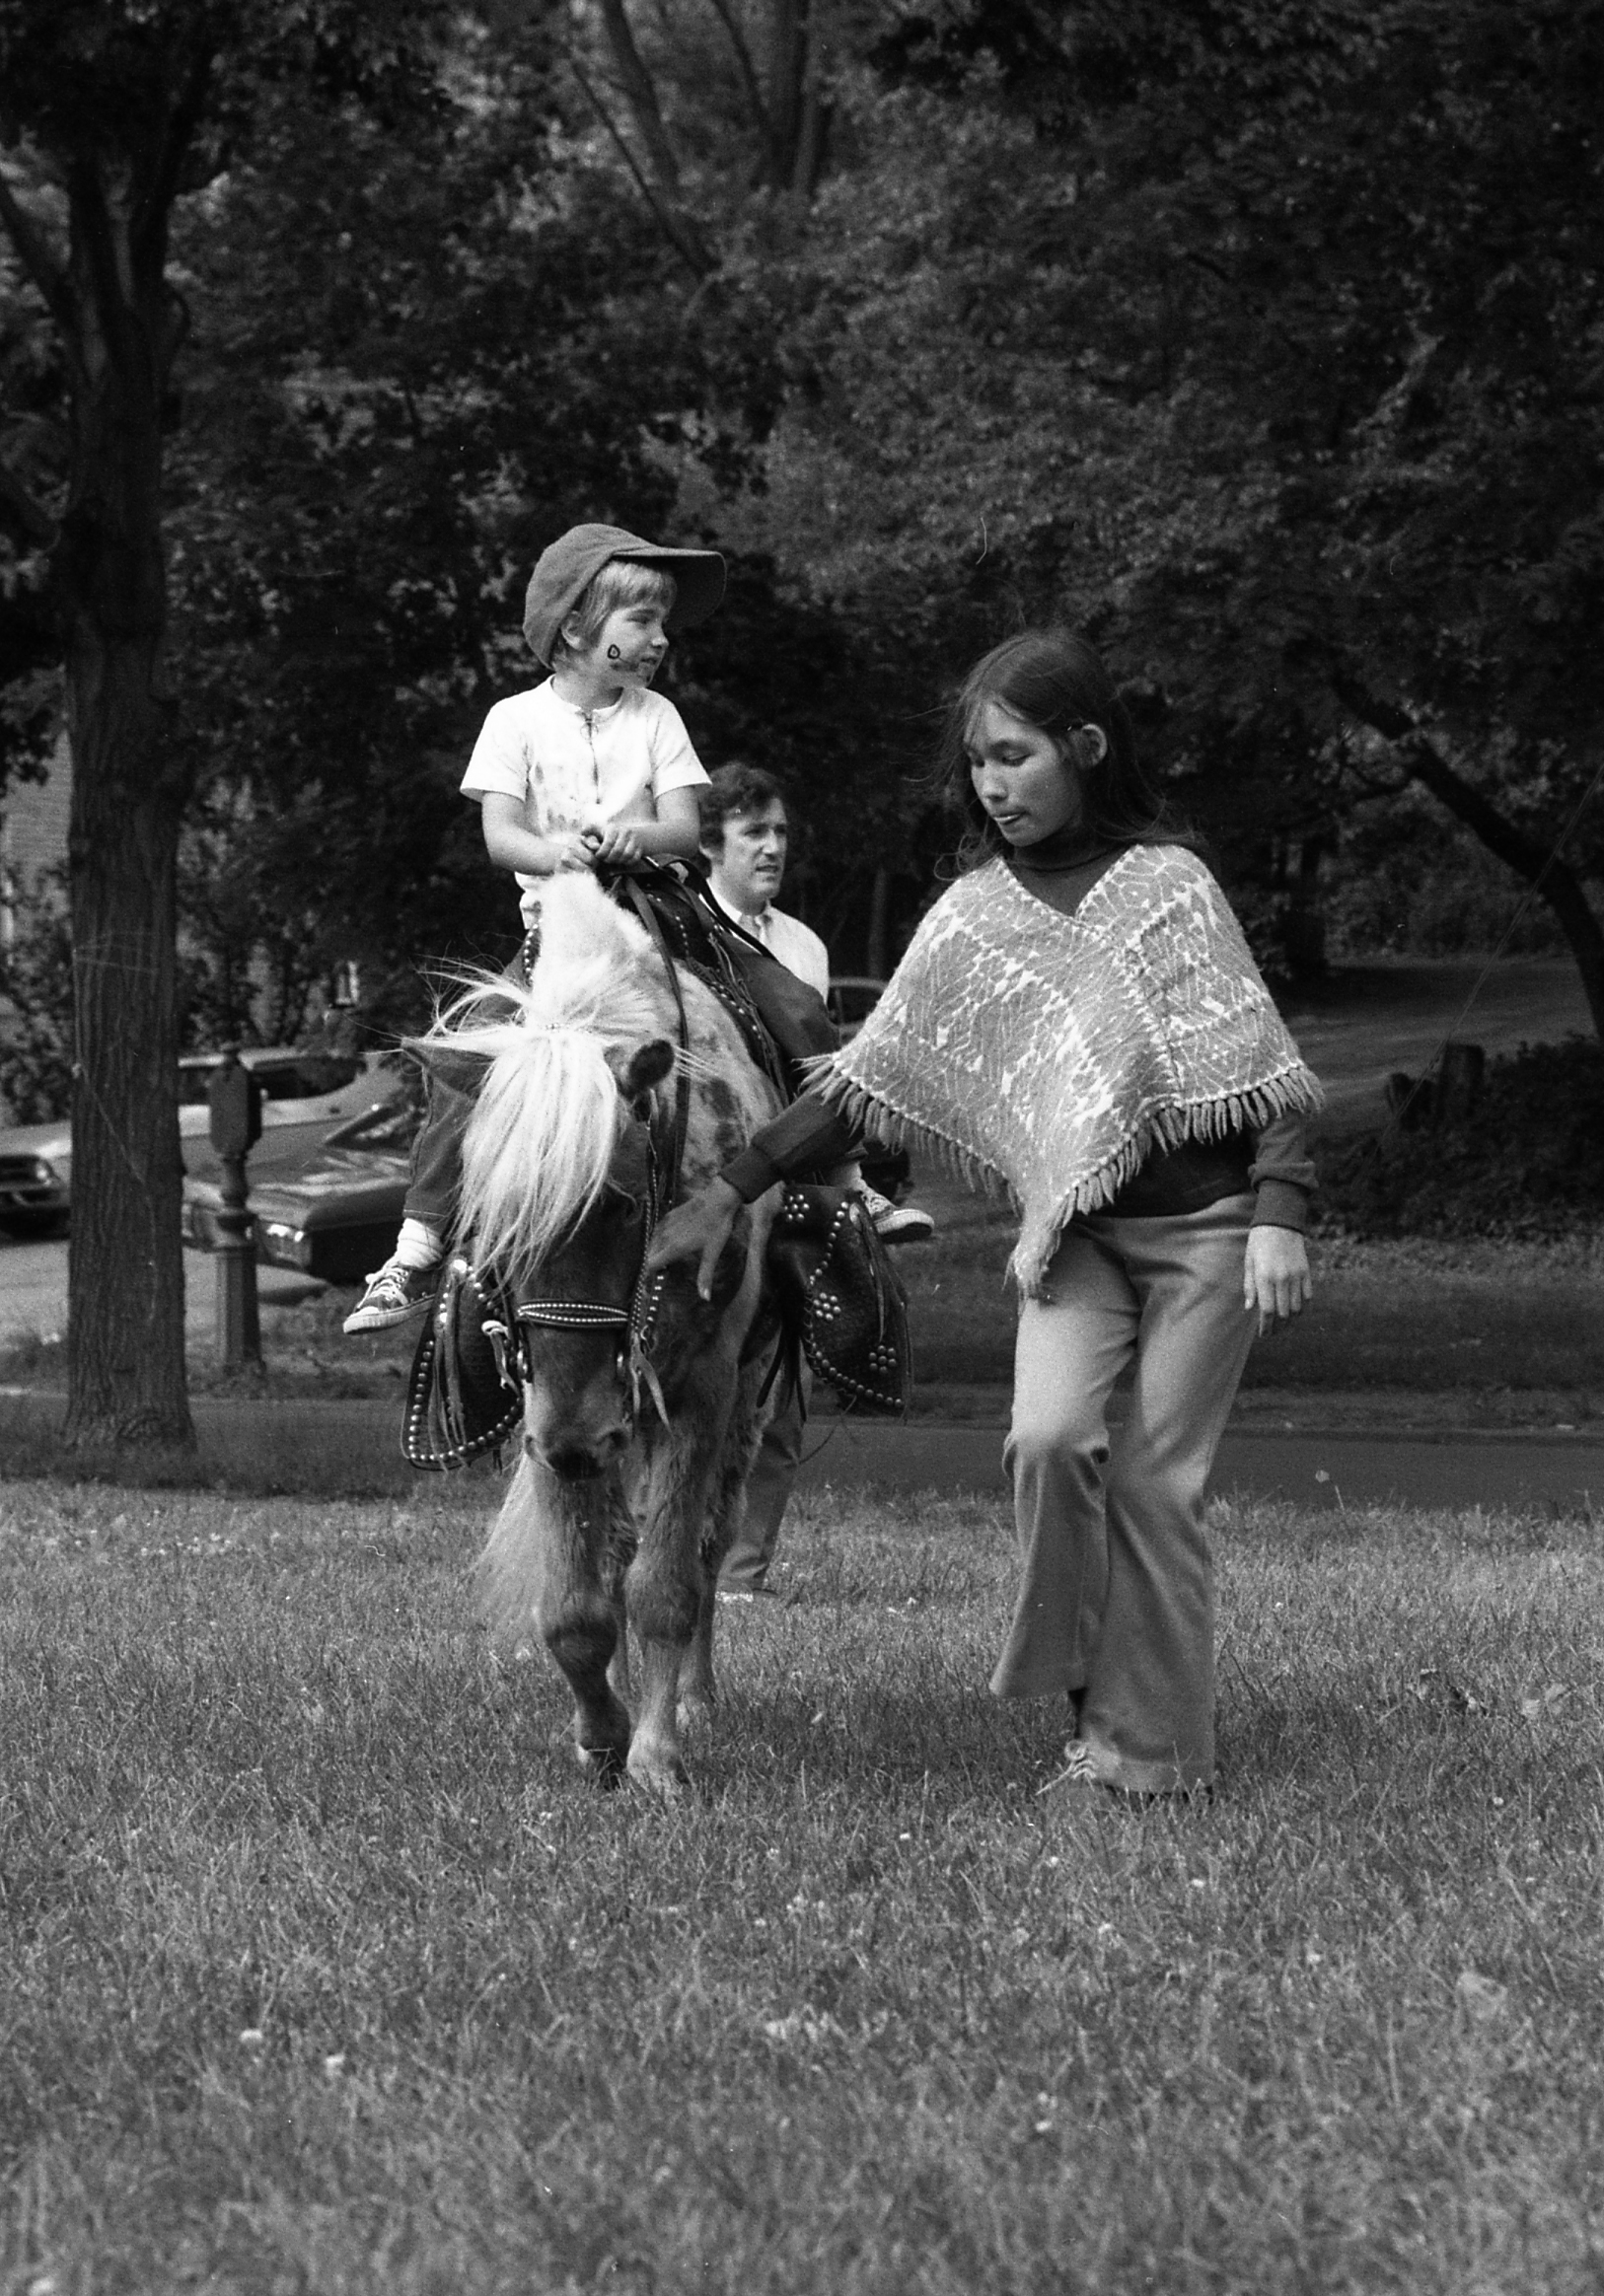 Picture 14: Pony Ride: It is interesting to note that there is a Police Call Box, apparently still functioning, on the left side of the photo near the tree.